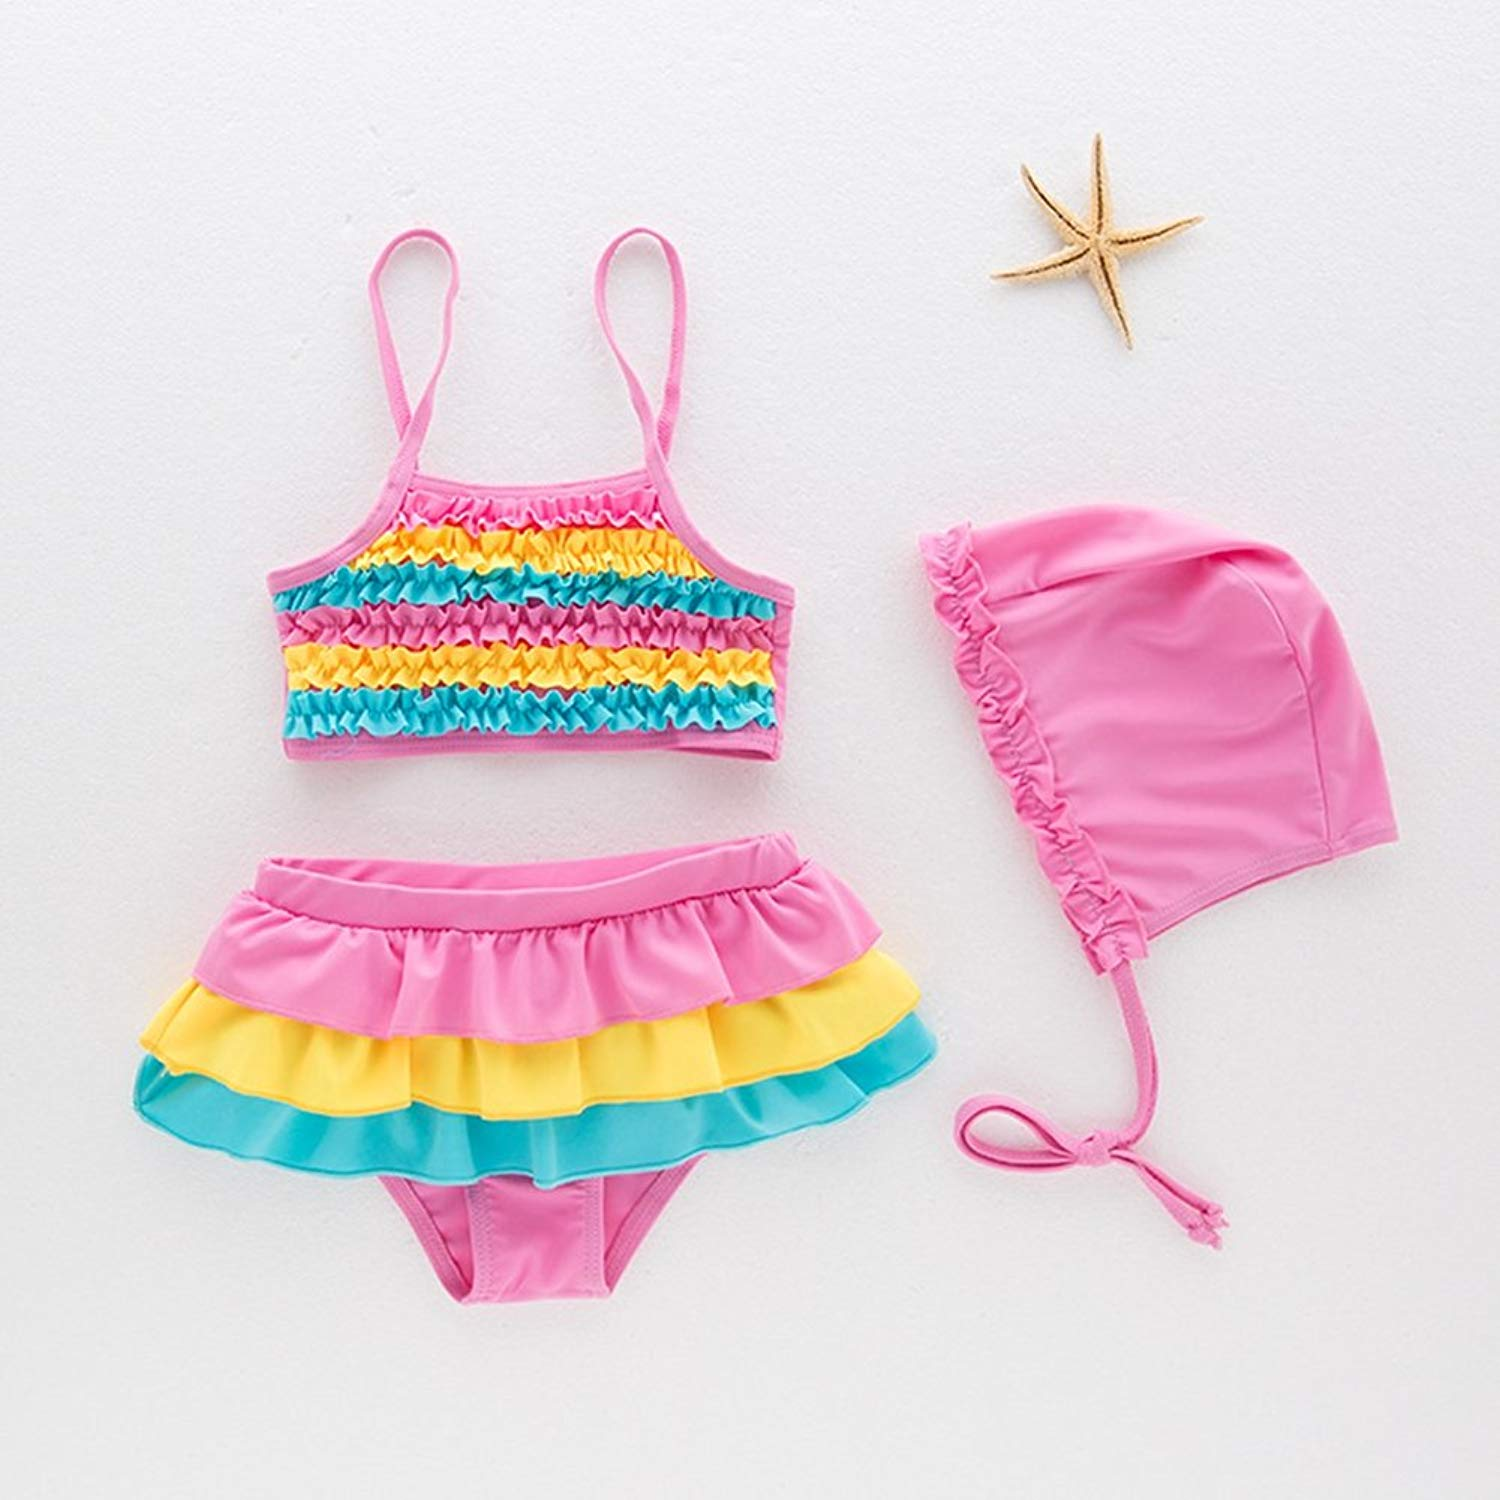 0a4e267ccfae9 Get Quotations · BERTERI Two-Piece Cute Colorful Rainbow Bikini Swimsuits  with Swimming Cap Bathing Suits Swimwear for